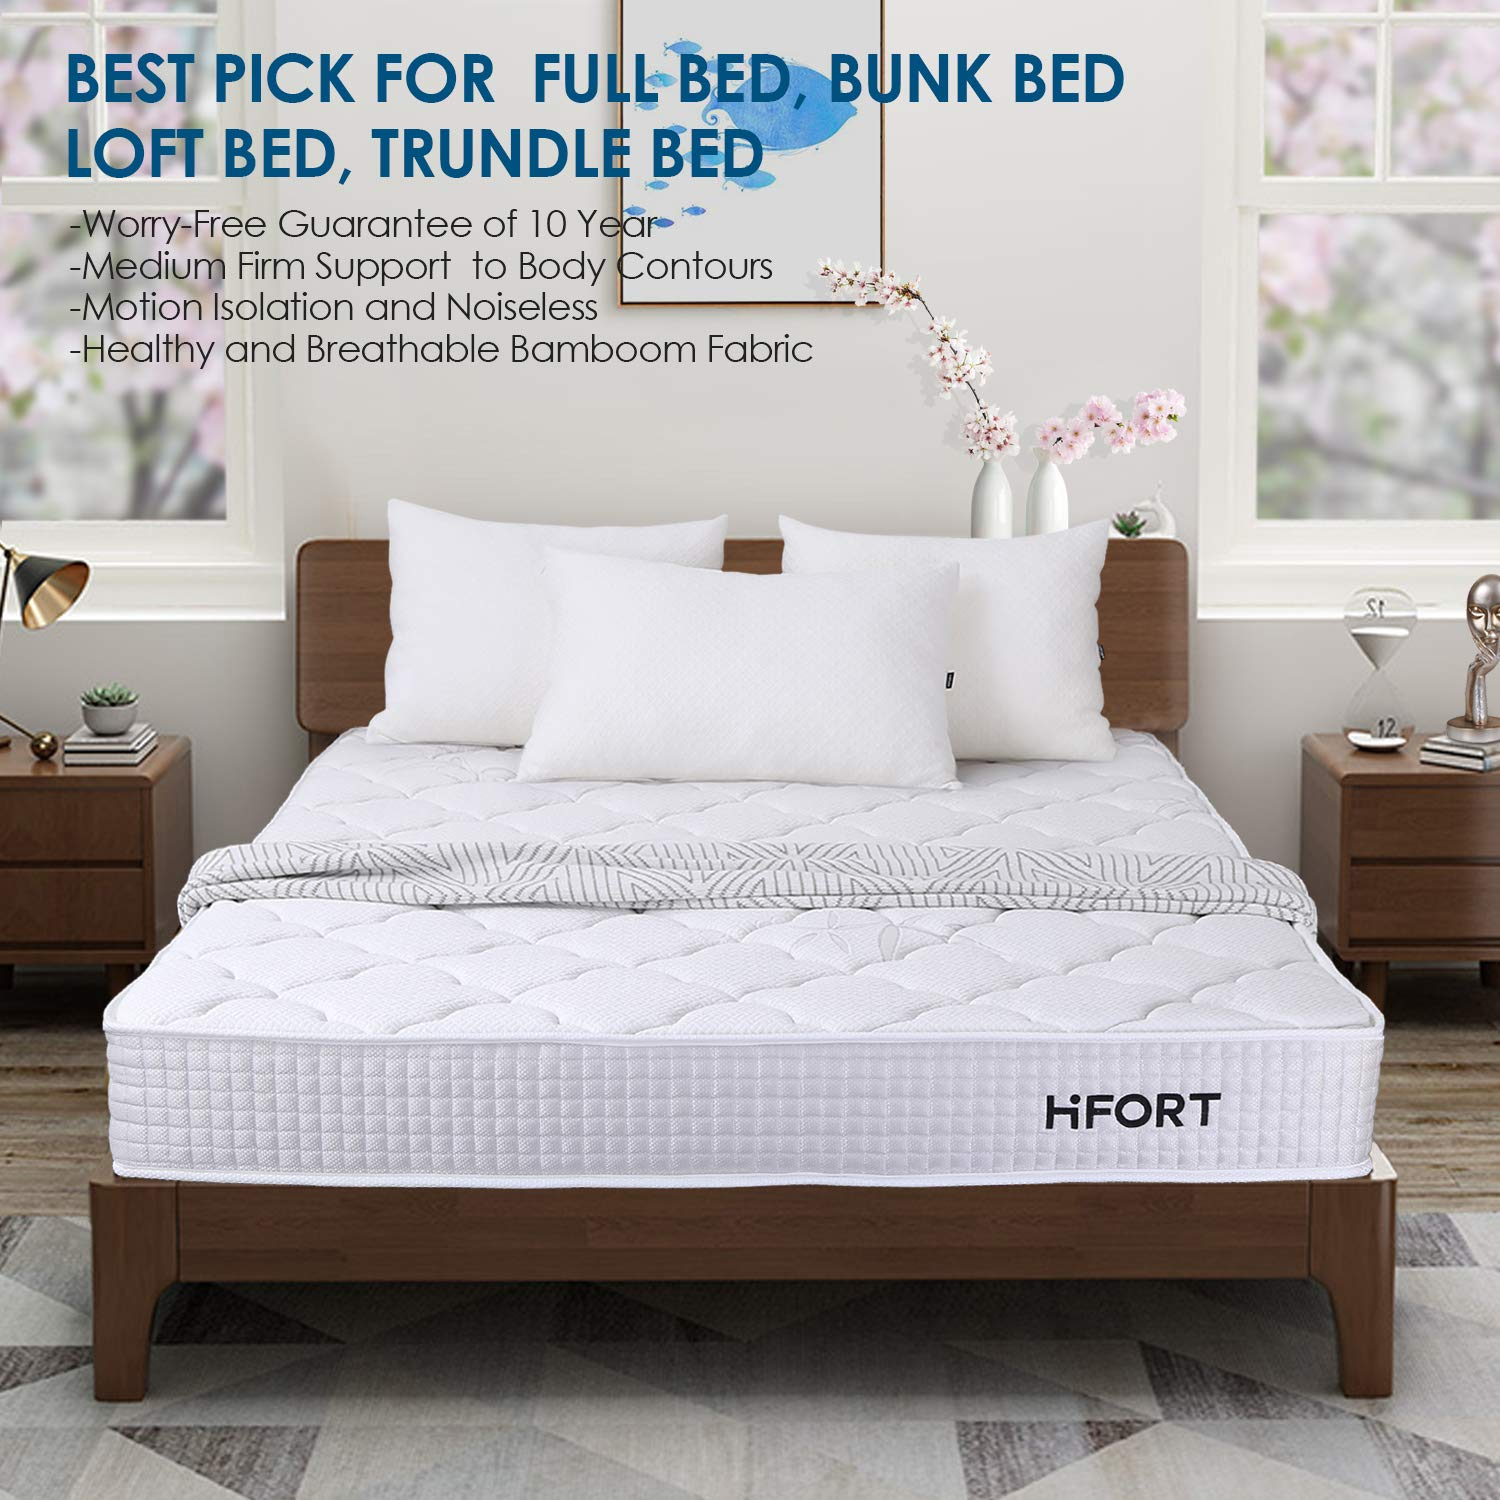 Amazon.com: HIFORT Twin Size Mattress 8 Inch Medium Firm Pocket Coil Spring Tight Top Bamboo Fabric 108-night Trial 10-Year Warranty 39x75 Inch, Colchones ...